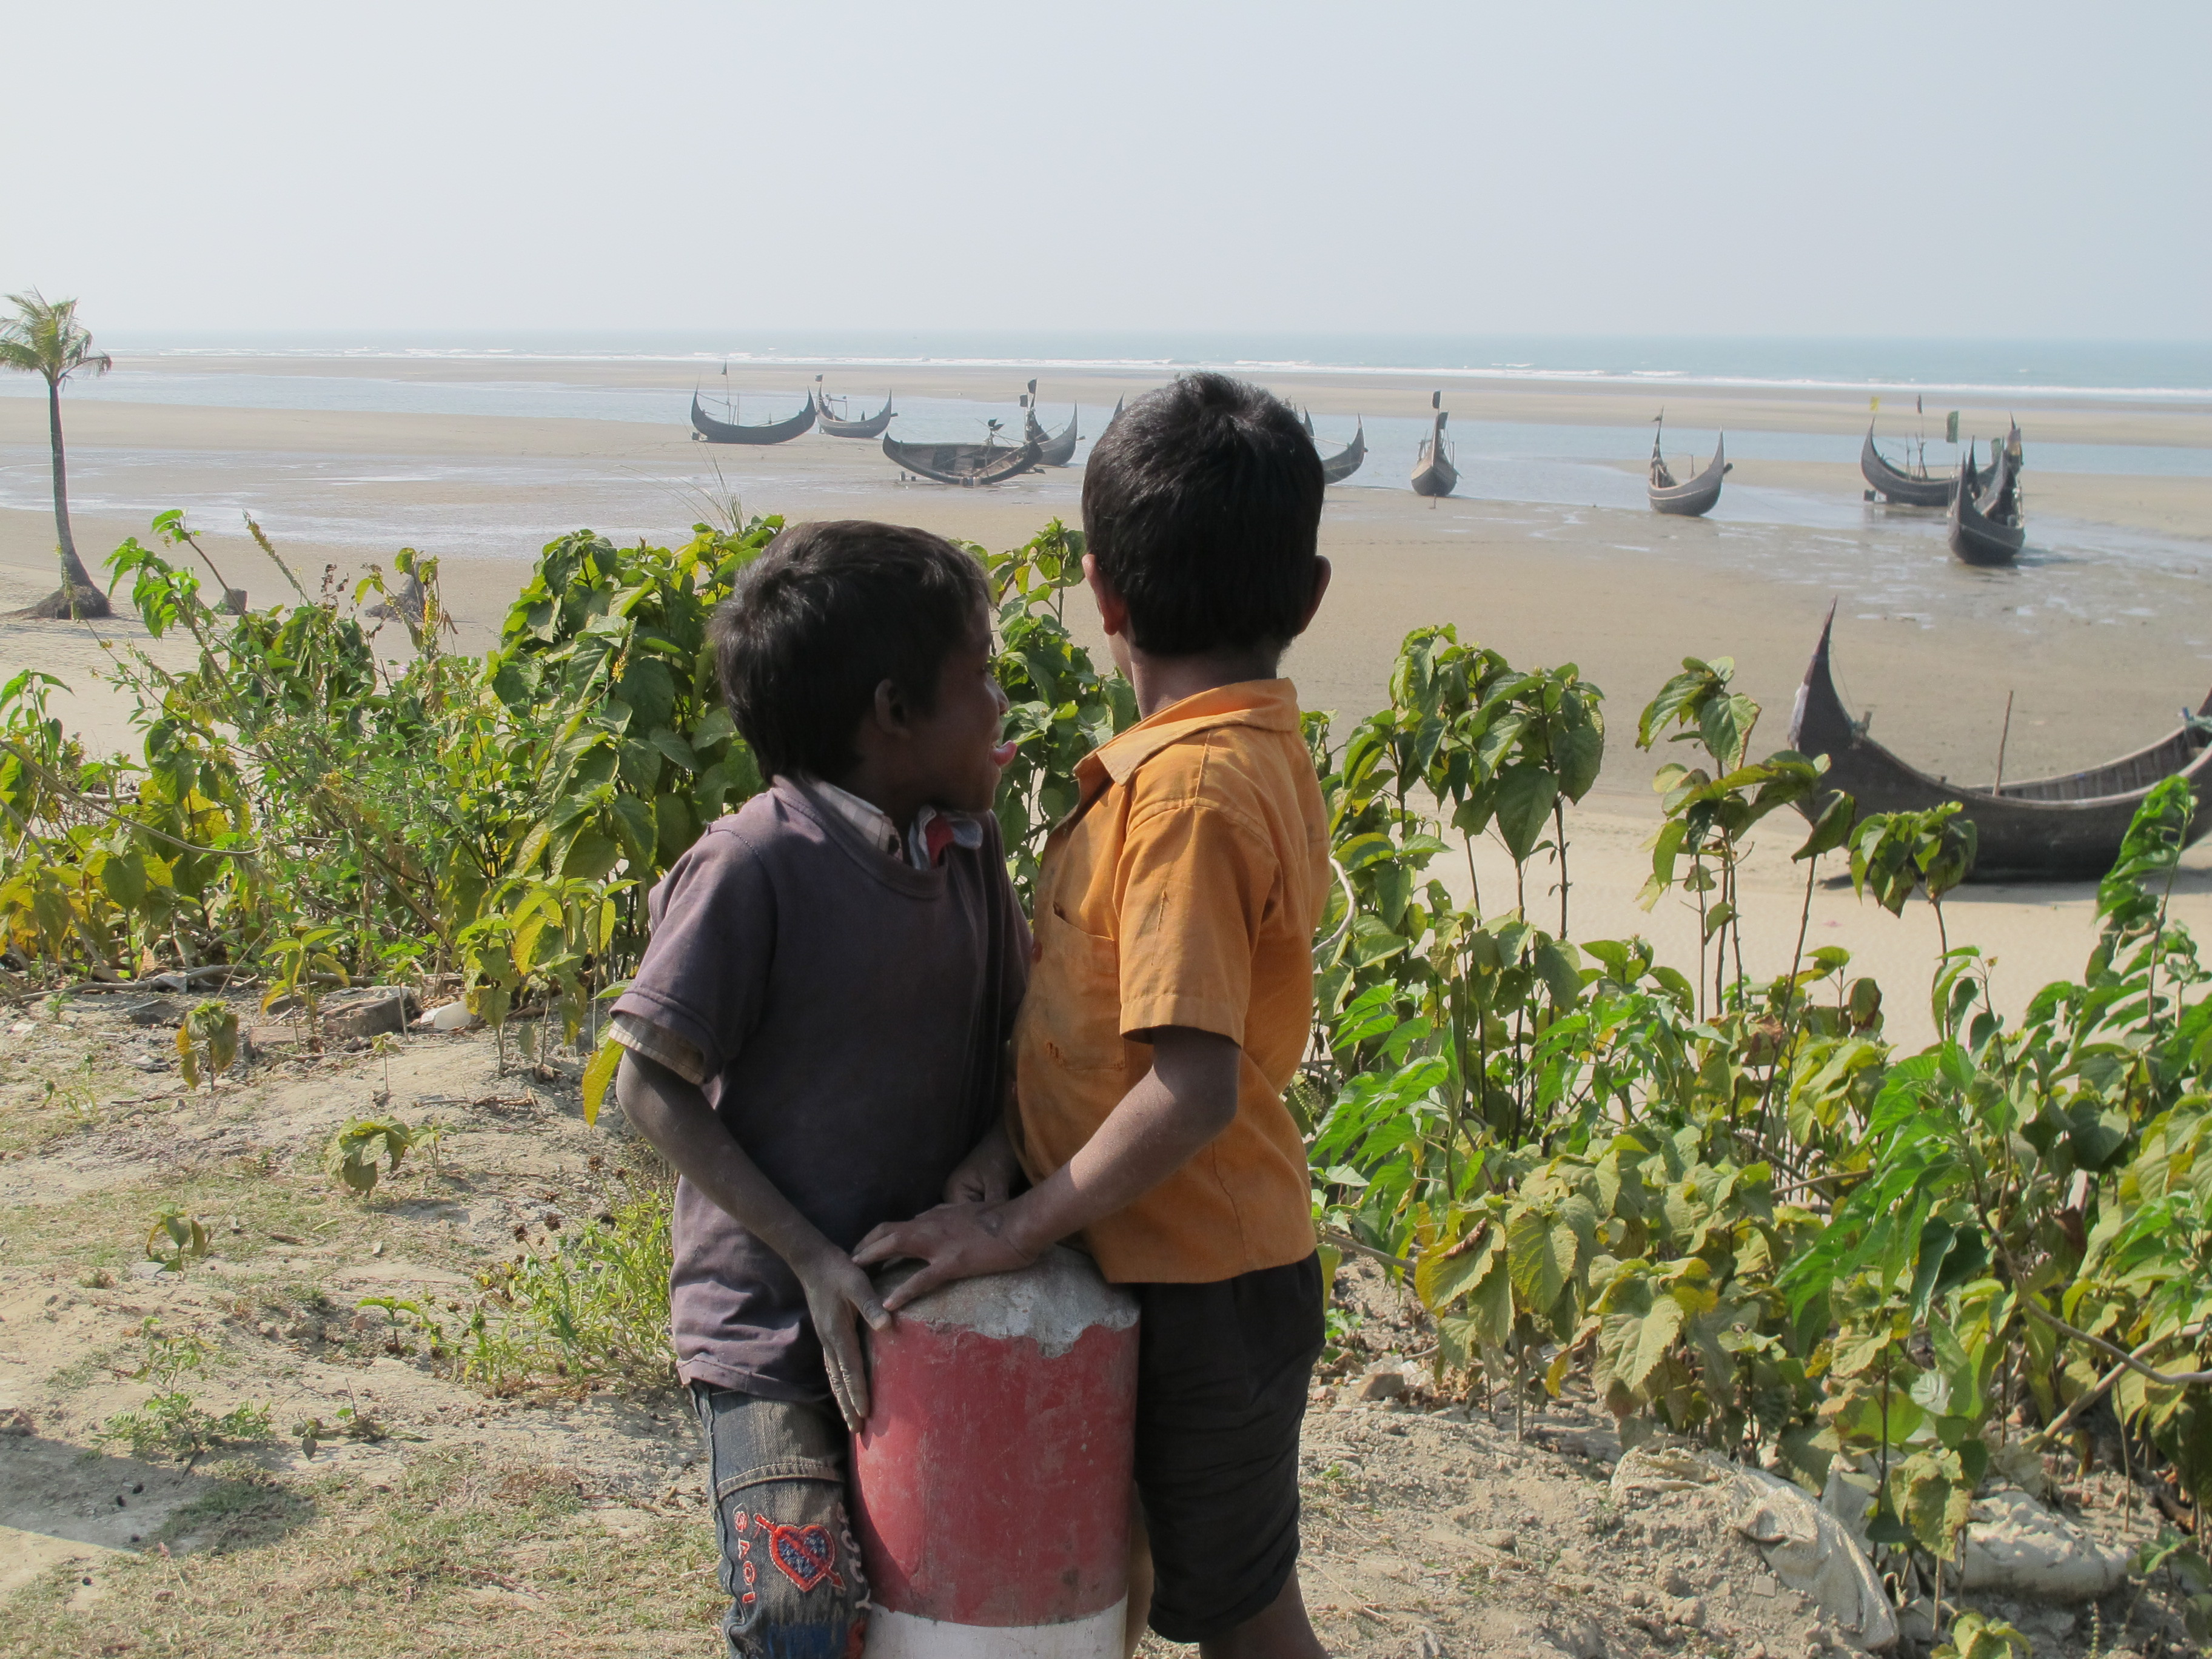 two young boys looking at beached ships